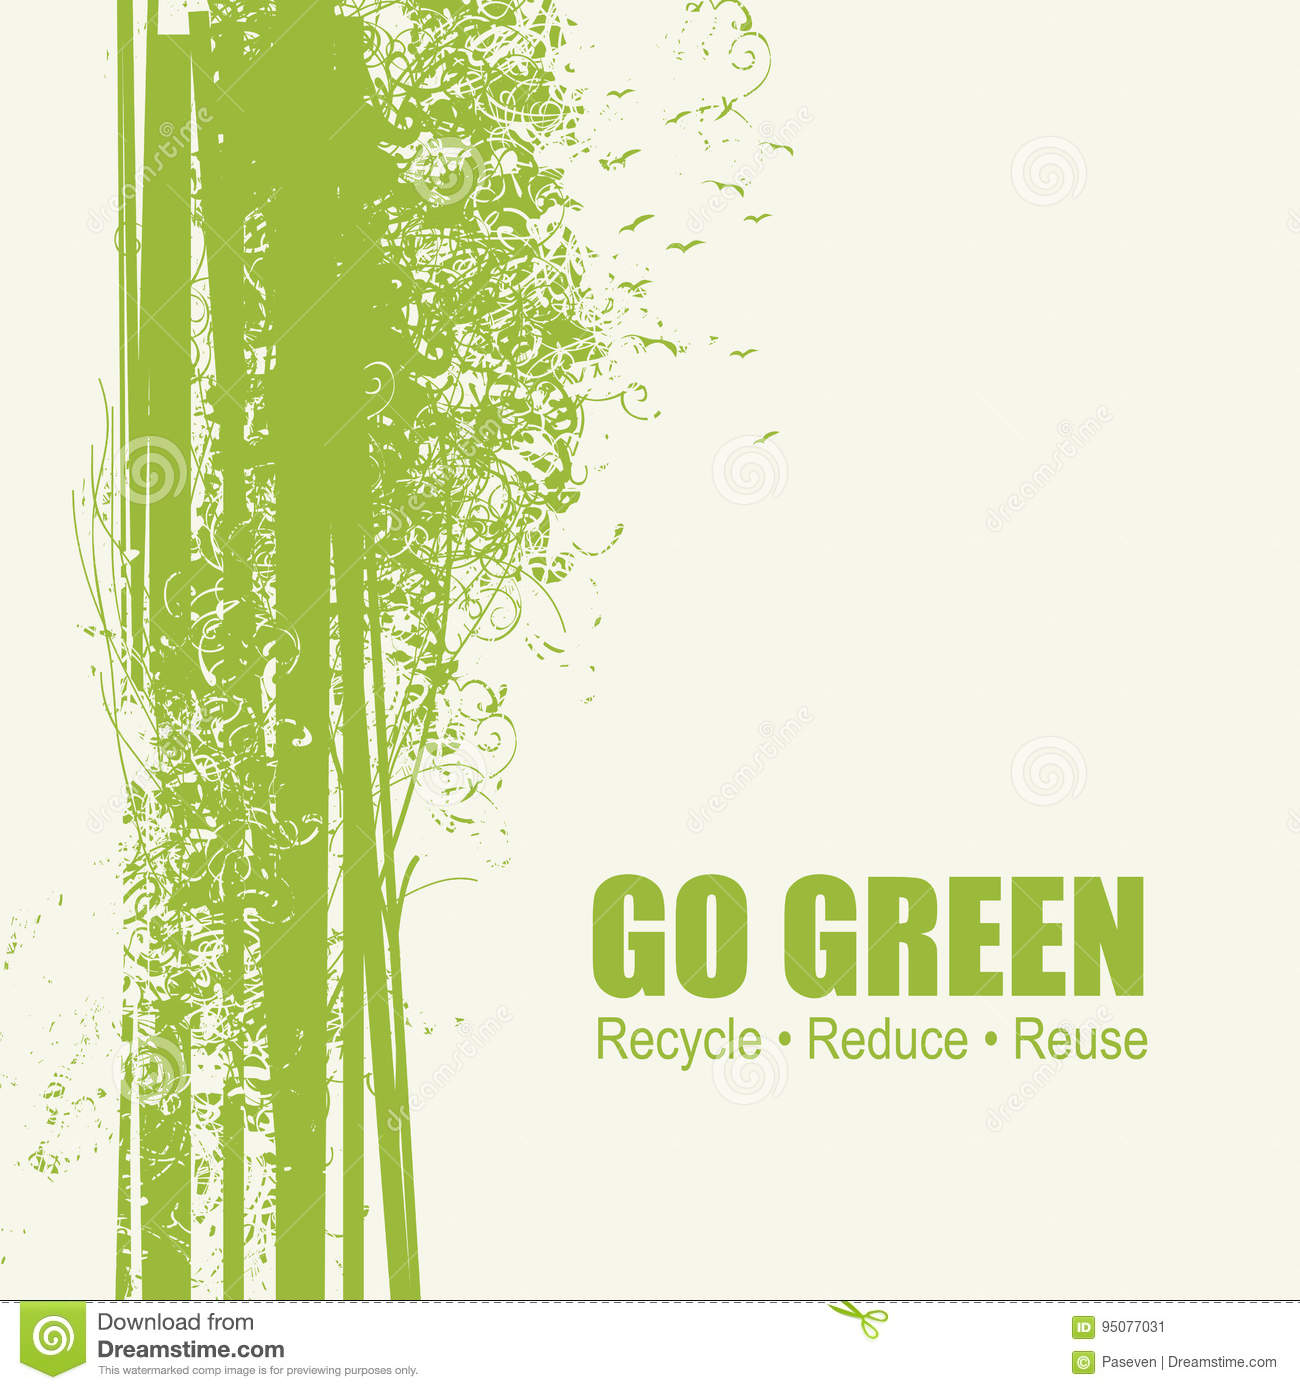 Go Green Recycle Reduce Reuse Eco Poster Concept Stock ...